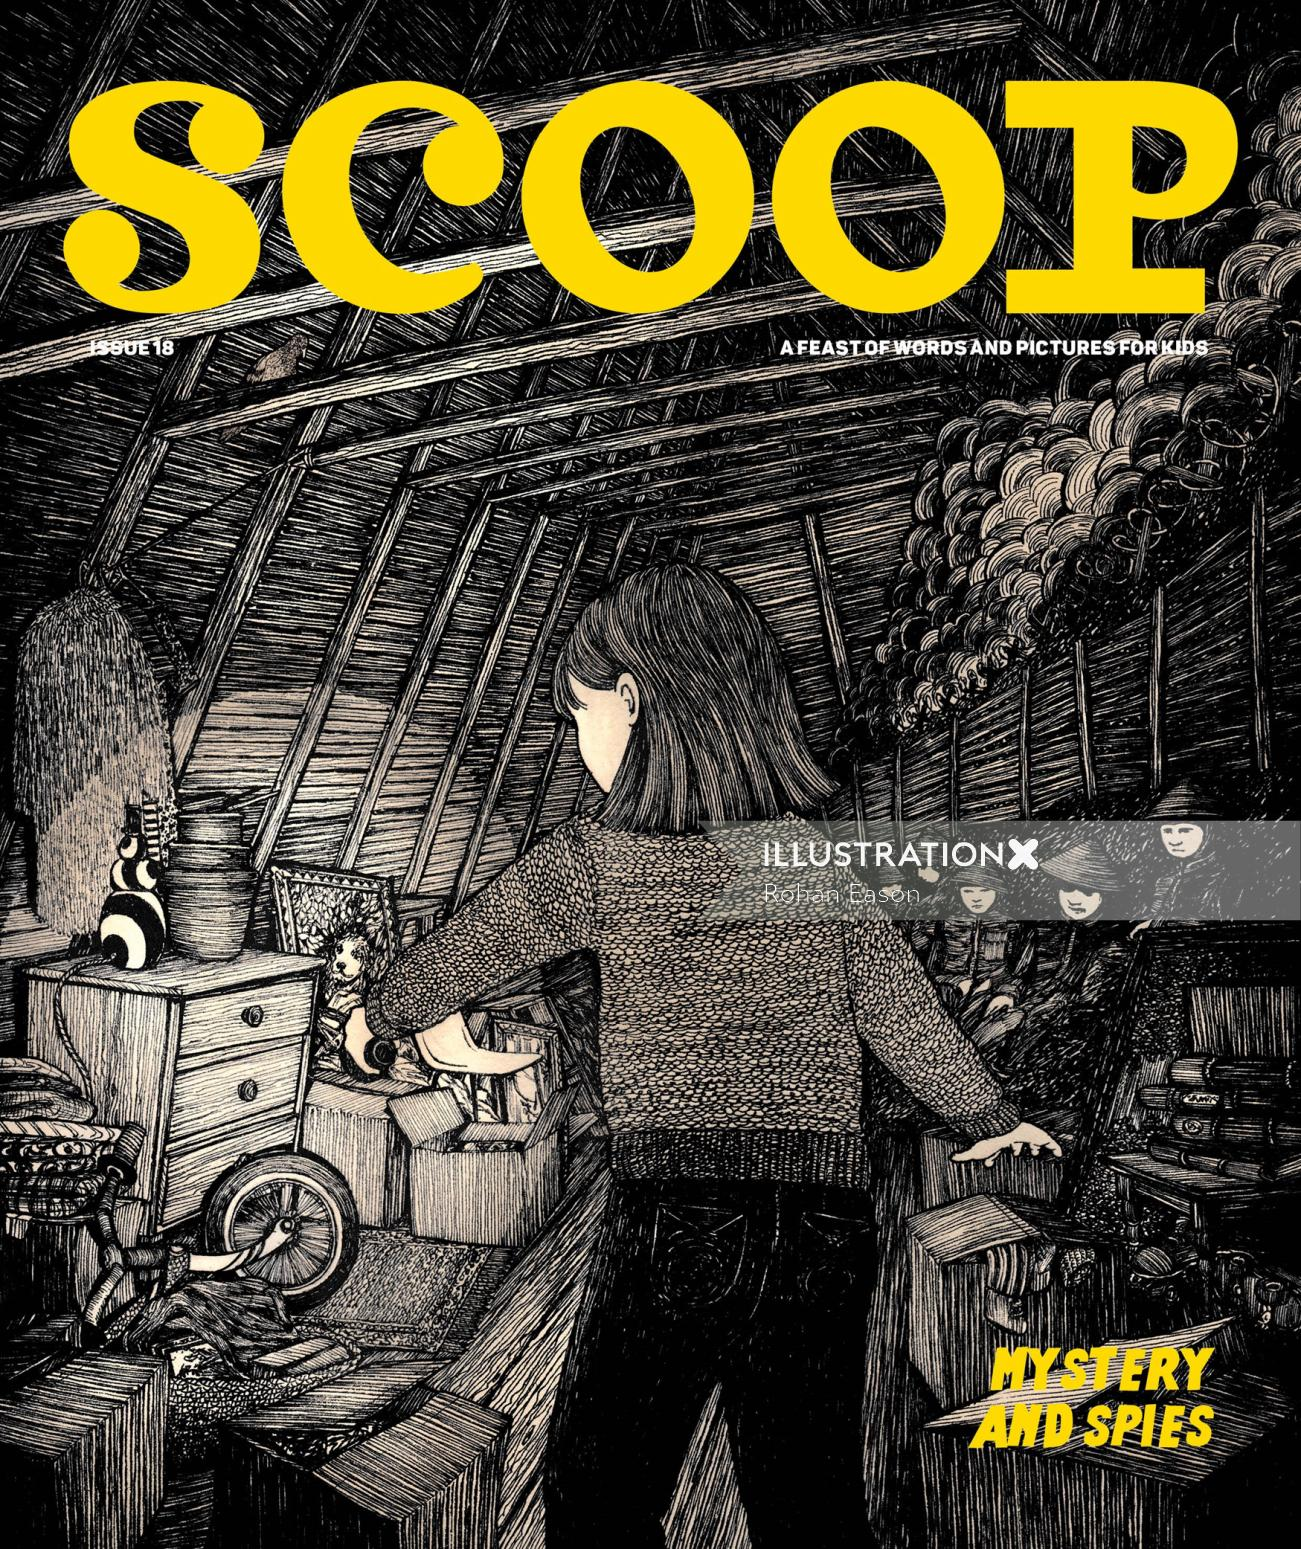 Soldier illustration for Scoop Magazine